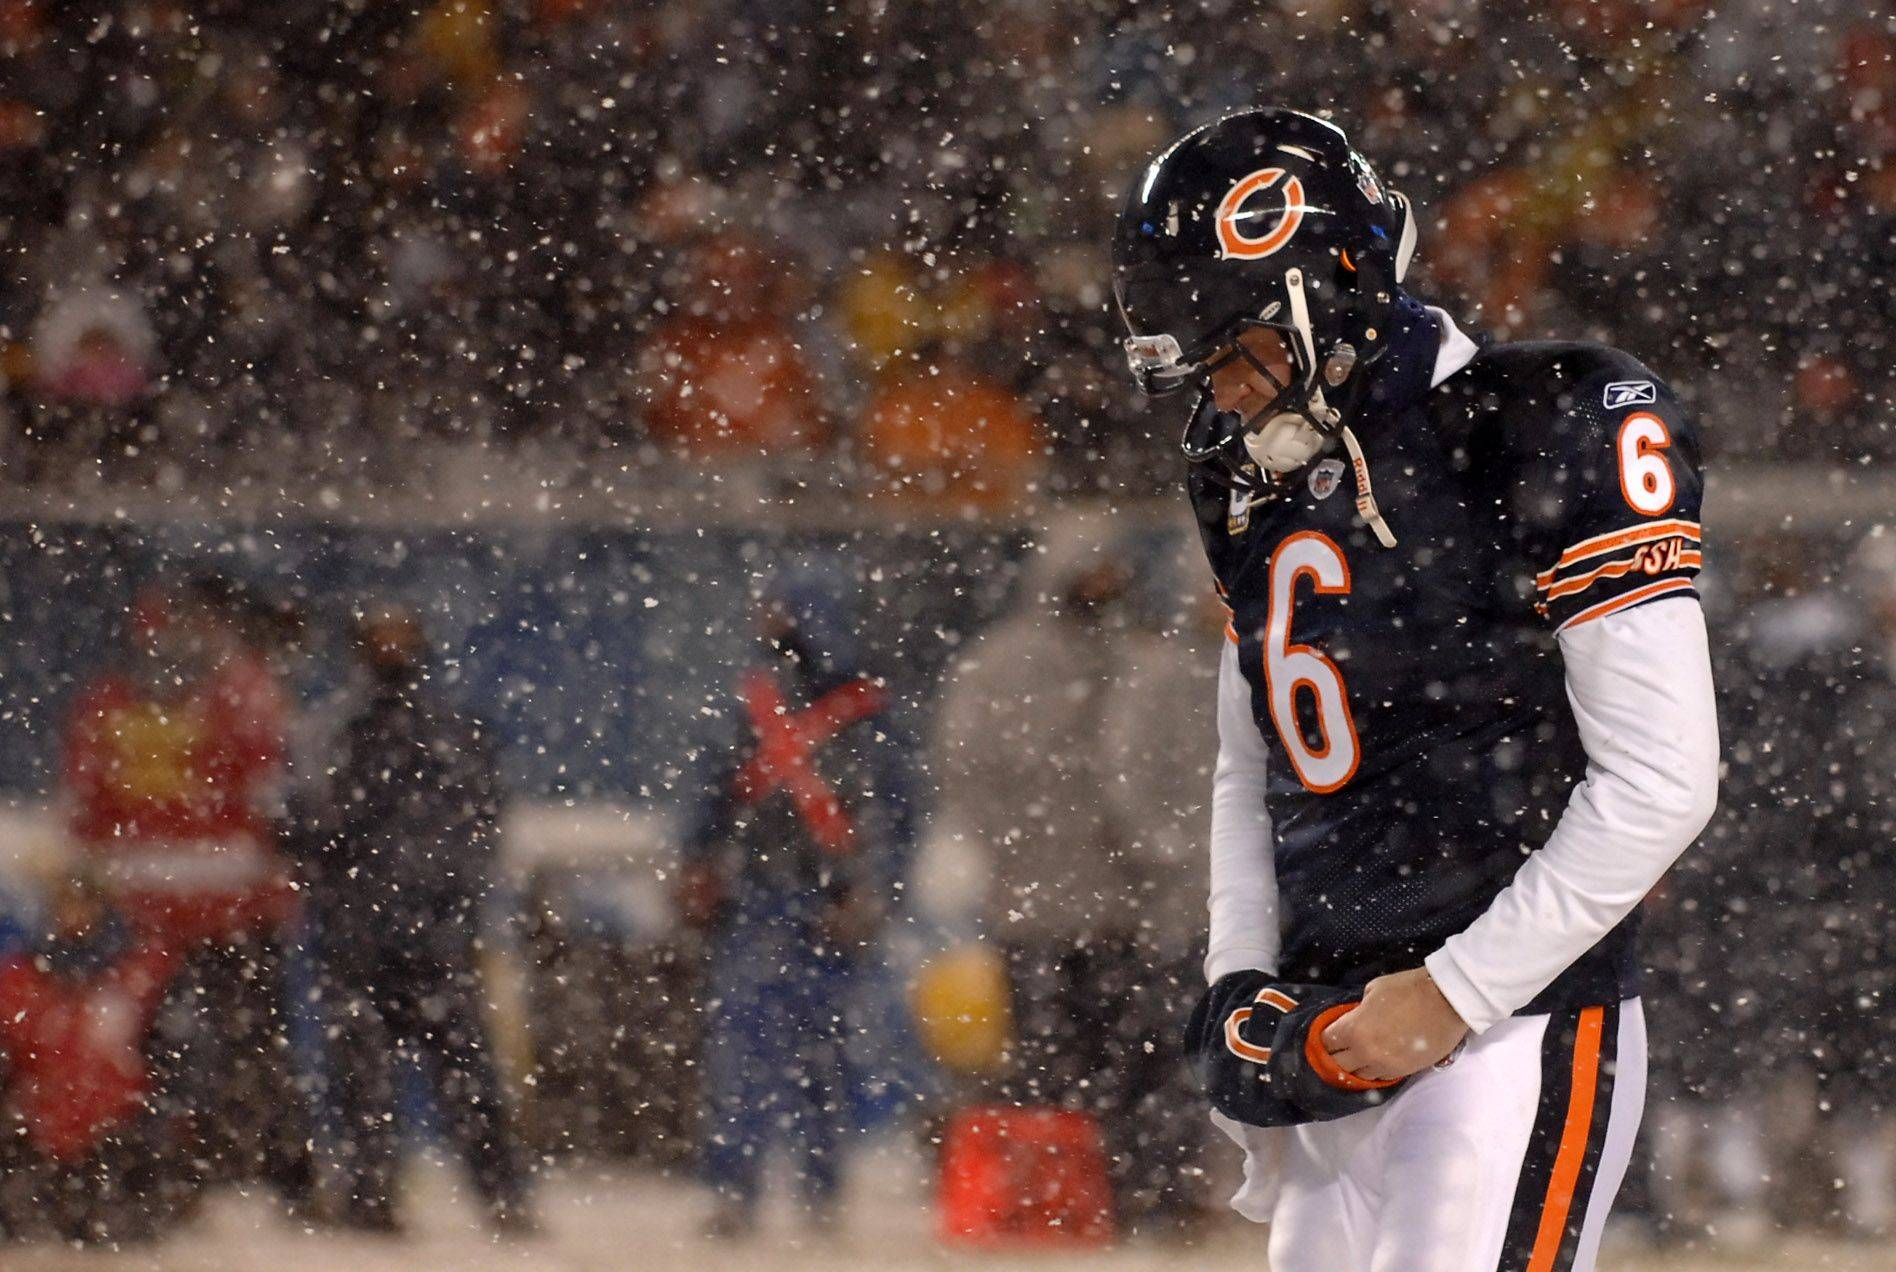 Chicago Bears quarterback Jay Cutler walks off the field after a change of possession.